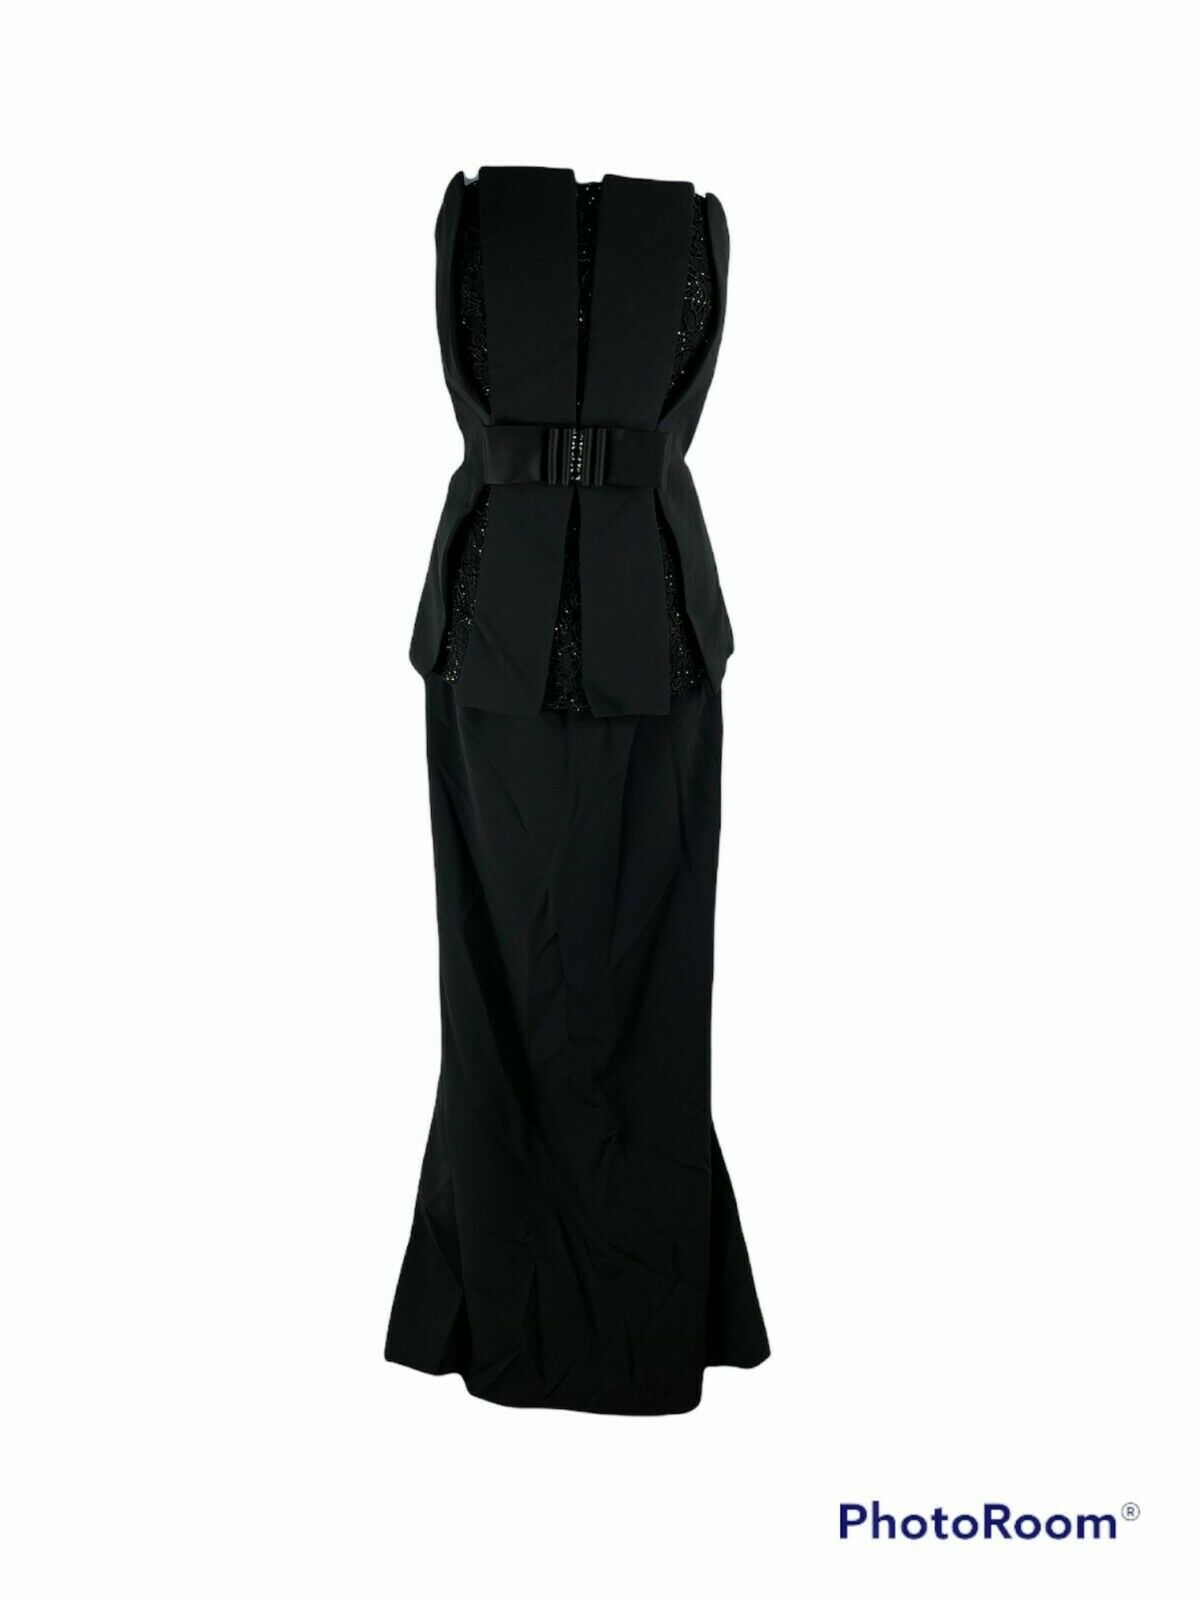 NWOT DAYMOR COUTURE strapless black beaded long formal dress size 10